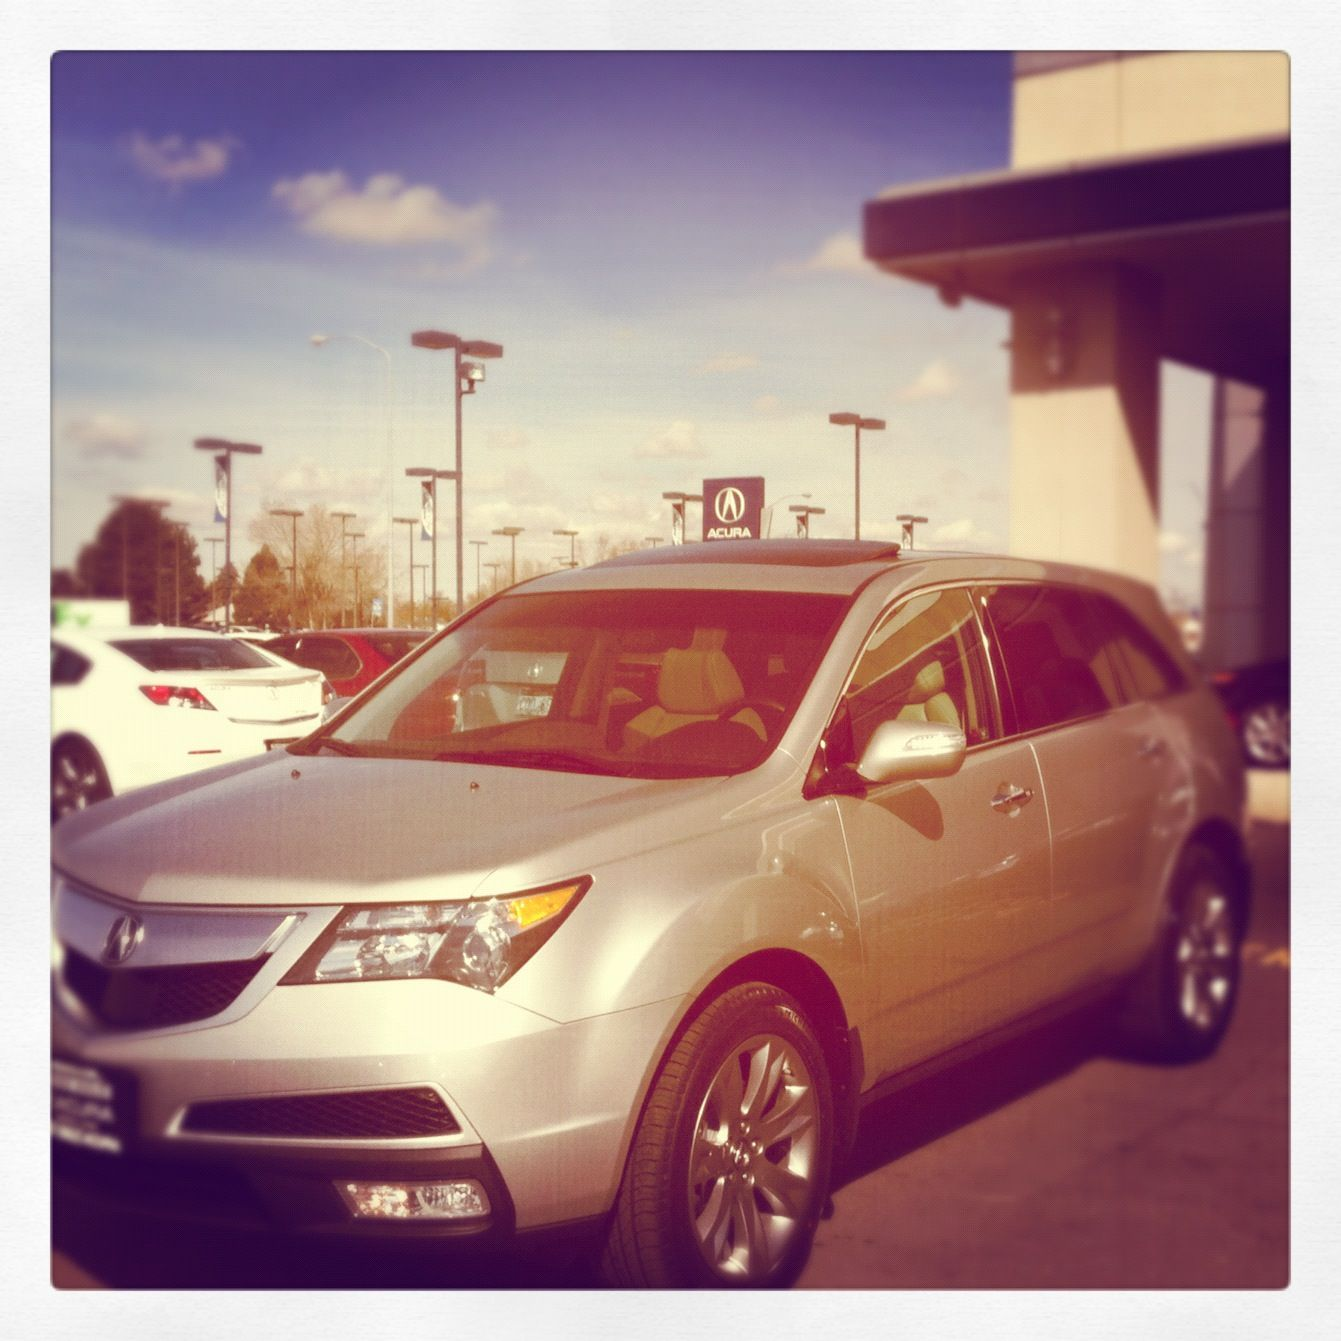 2012 Acura MDX Beautiful First Day Of Spring!